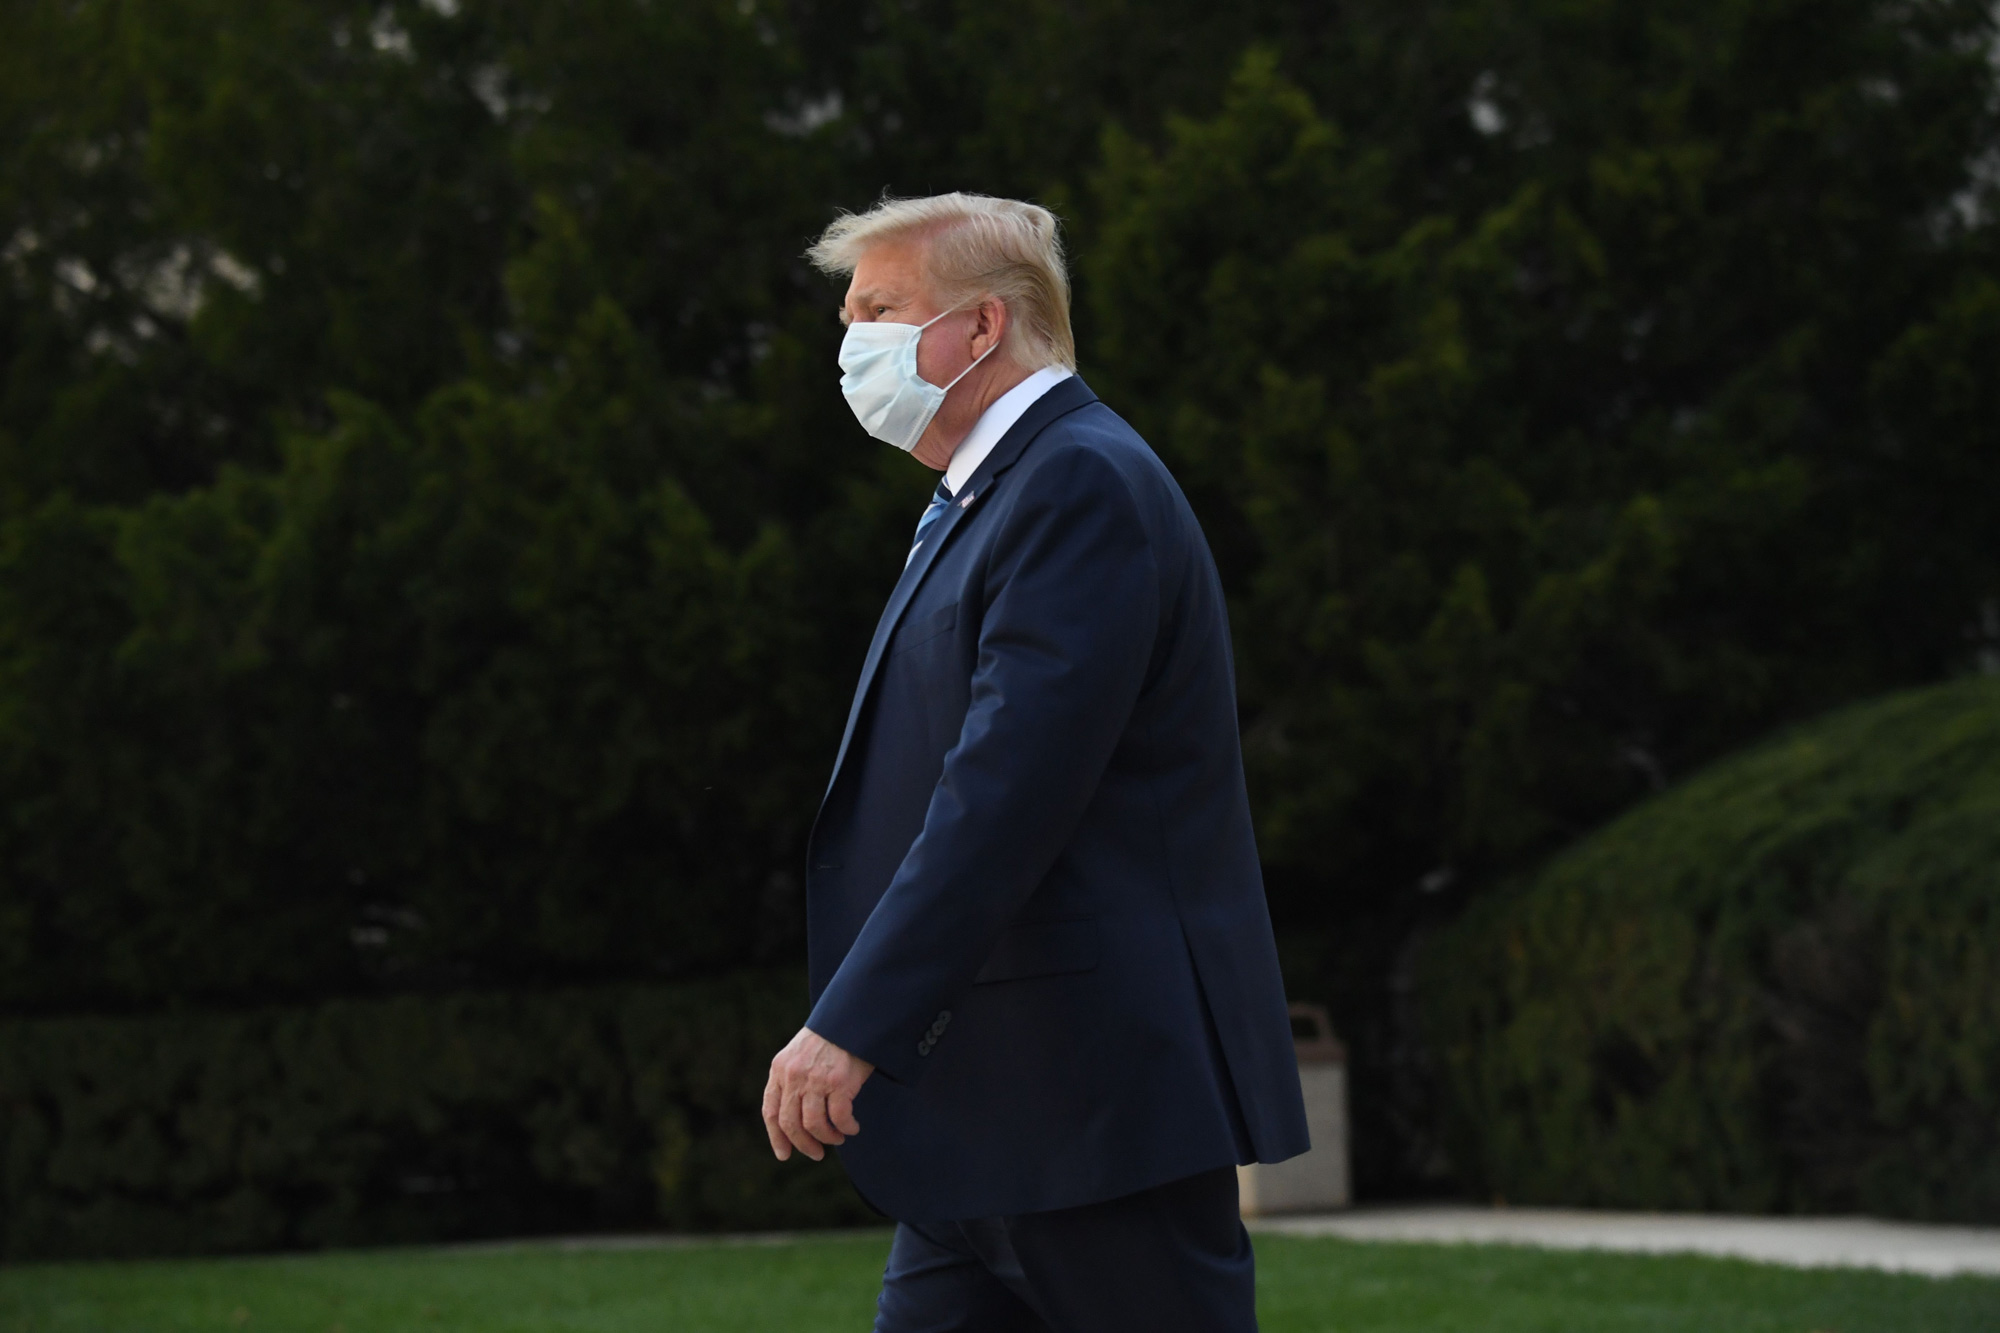 President Donald Trump leaves Walter Reed Medical Center in Bethesda, Maryland, heading towards Marine One on October 5.